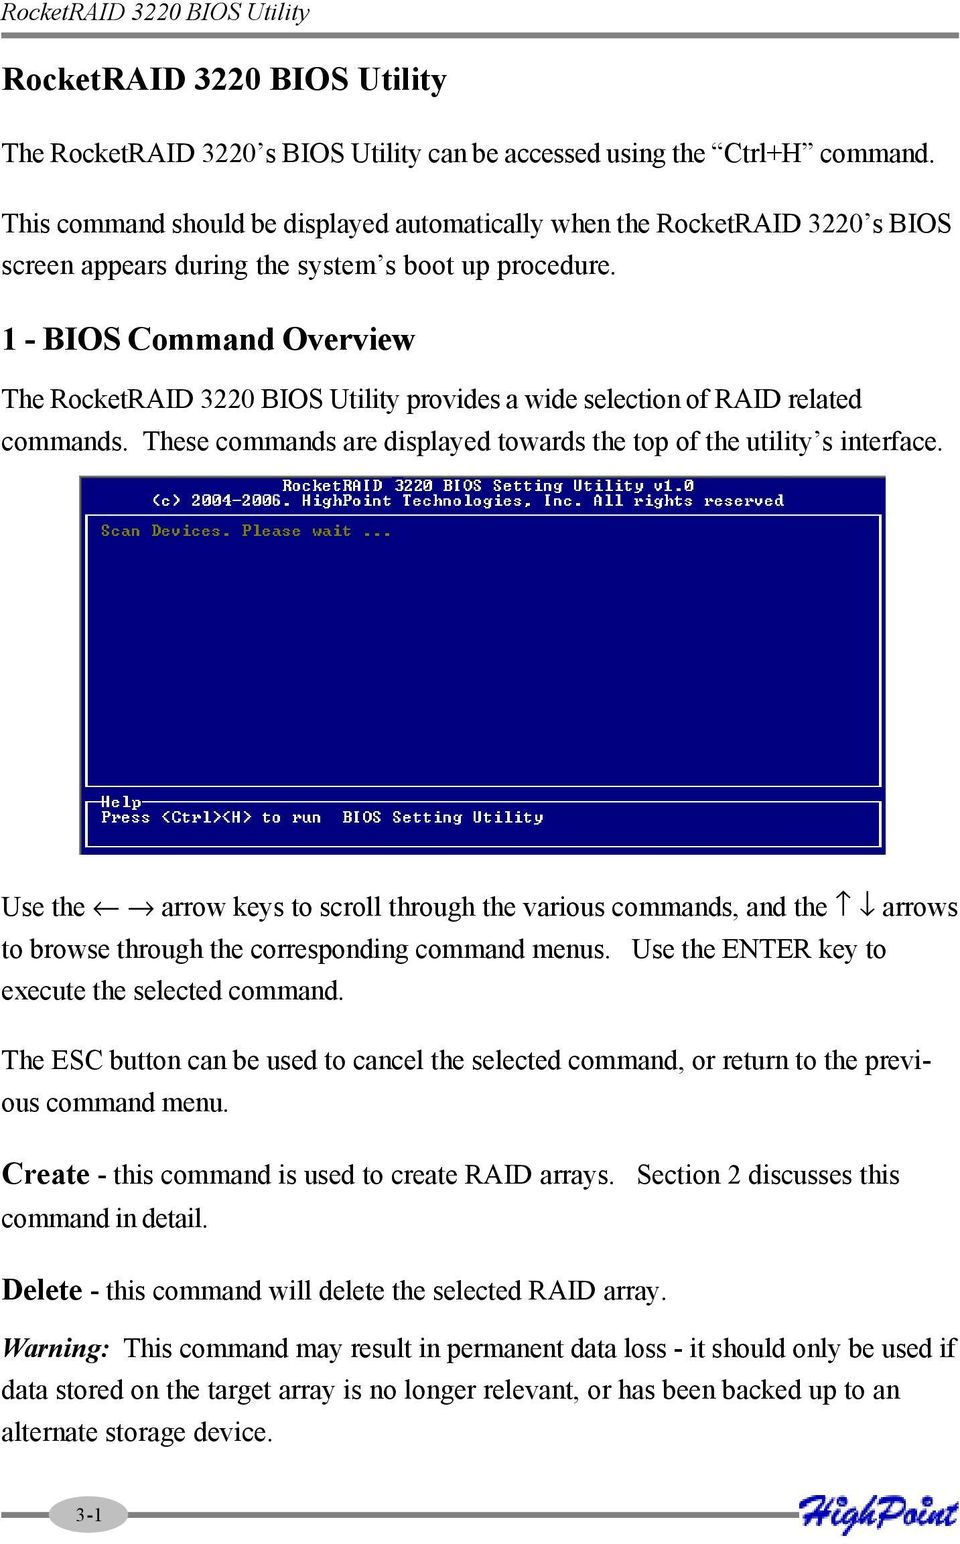 1 - BIOS Command Overview The RocketRAID 3220 BIOS Utility provides a wide selection of RAID related commands. These commands are displayed towards the top of the utility s interface.